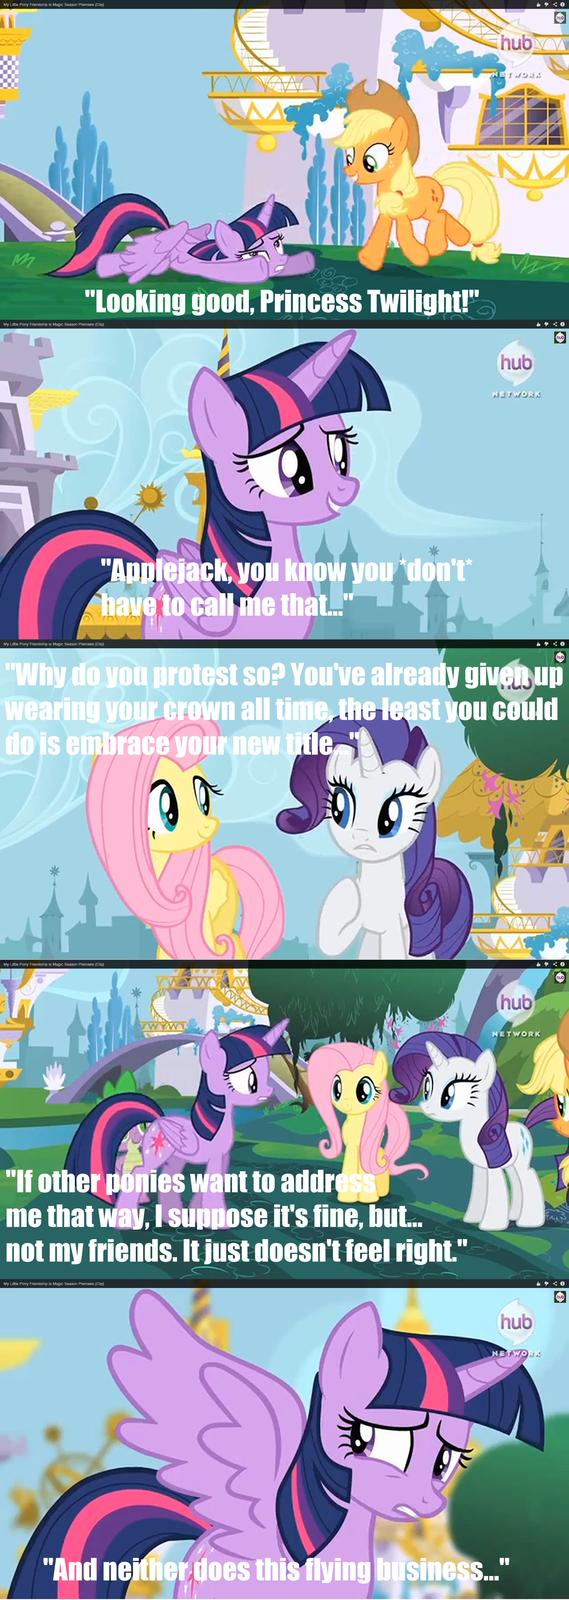 Twilight having princess issues...